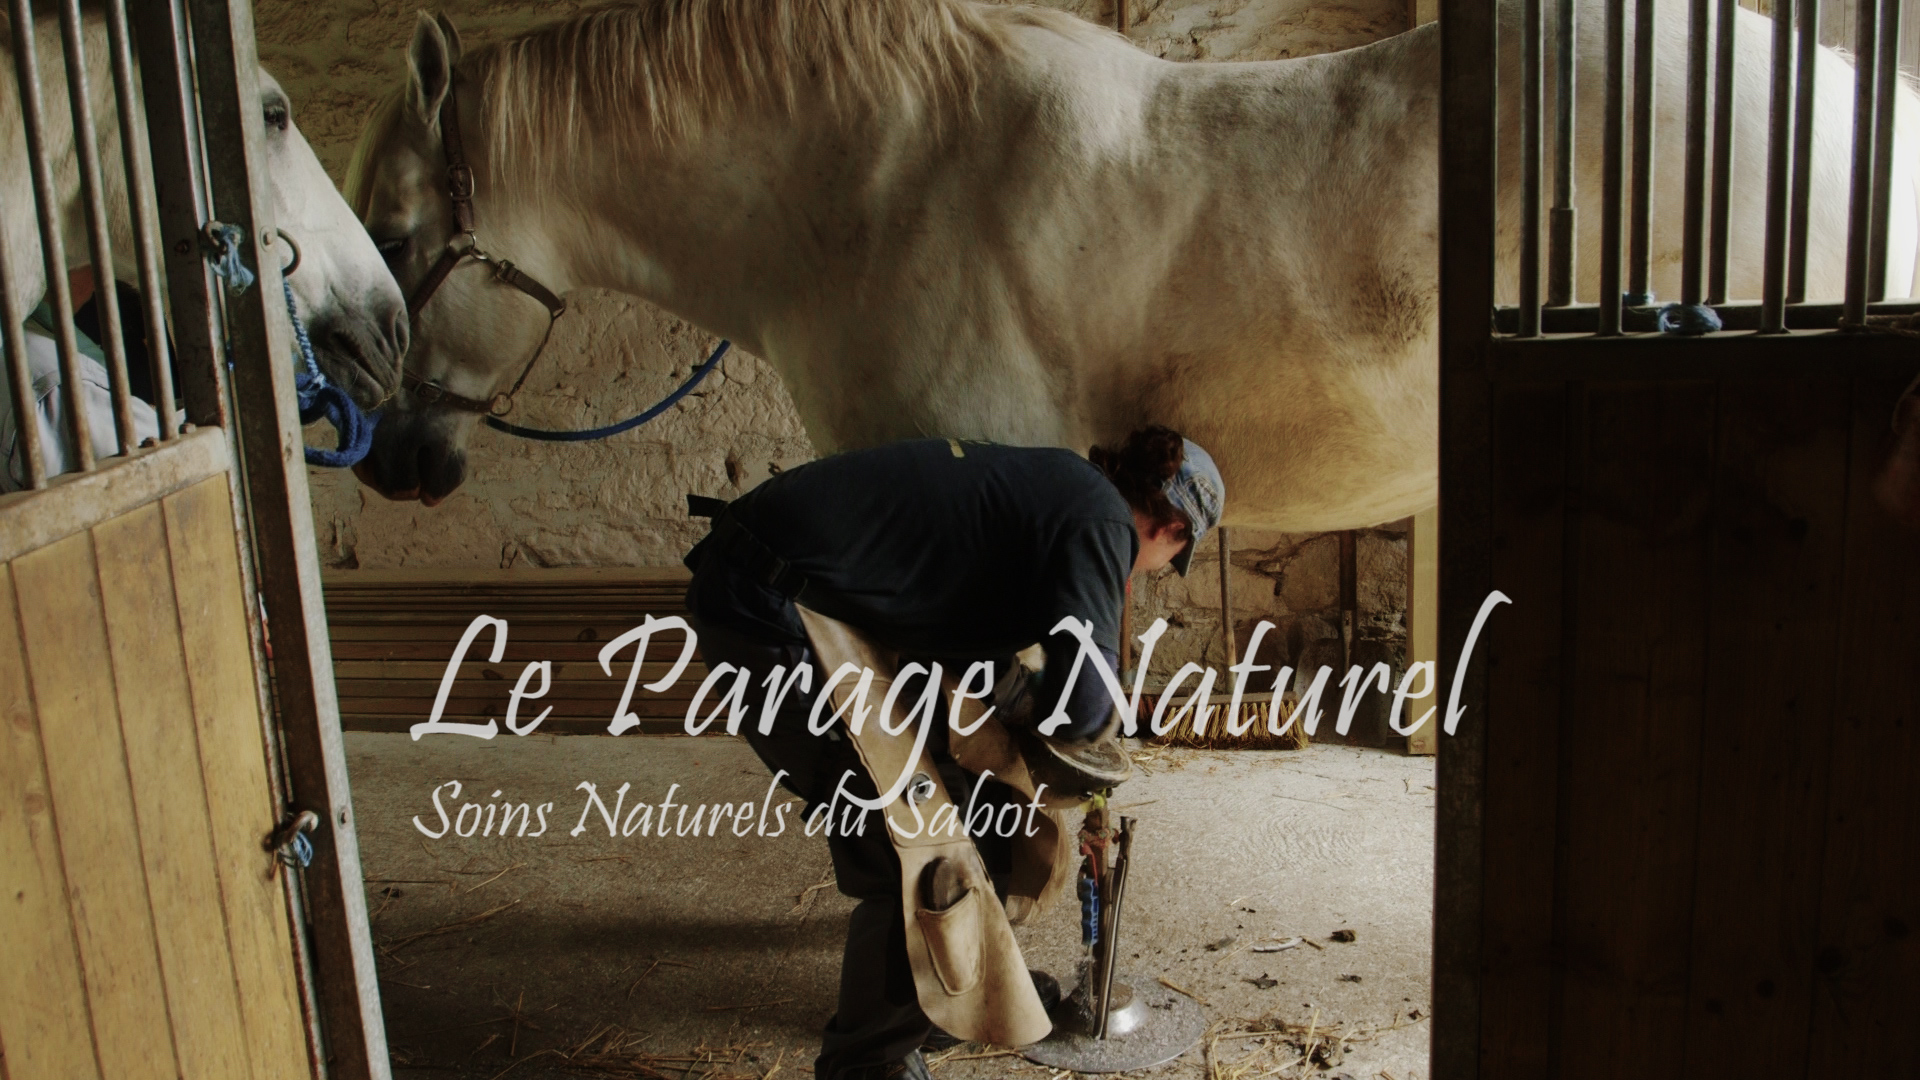 La Parage Naturel